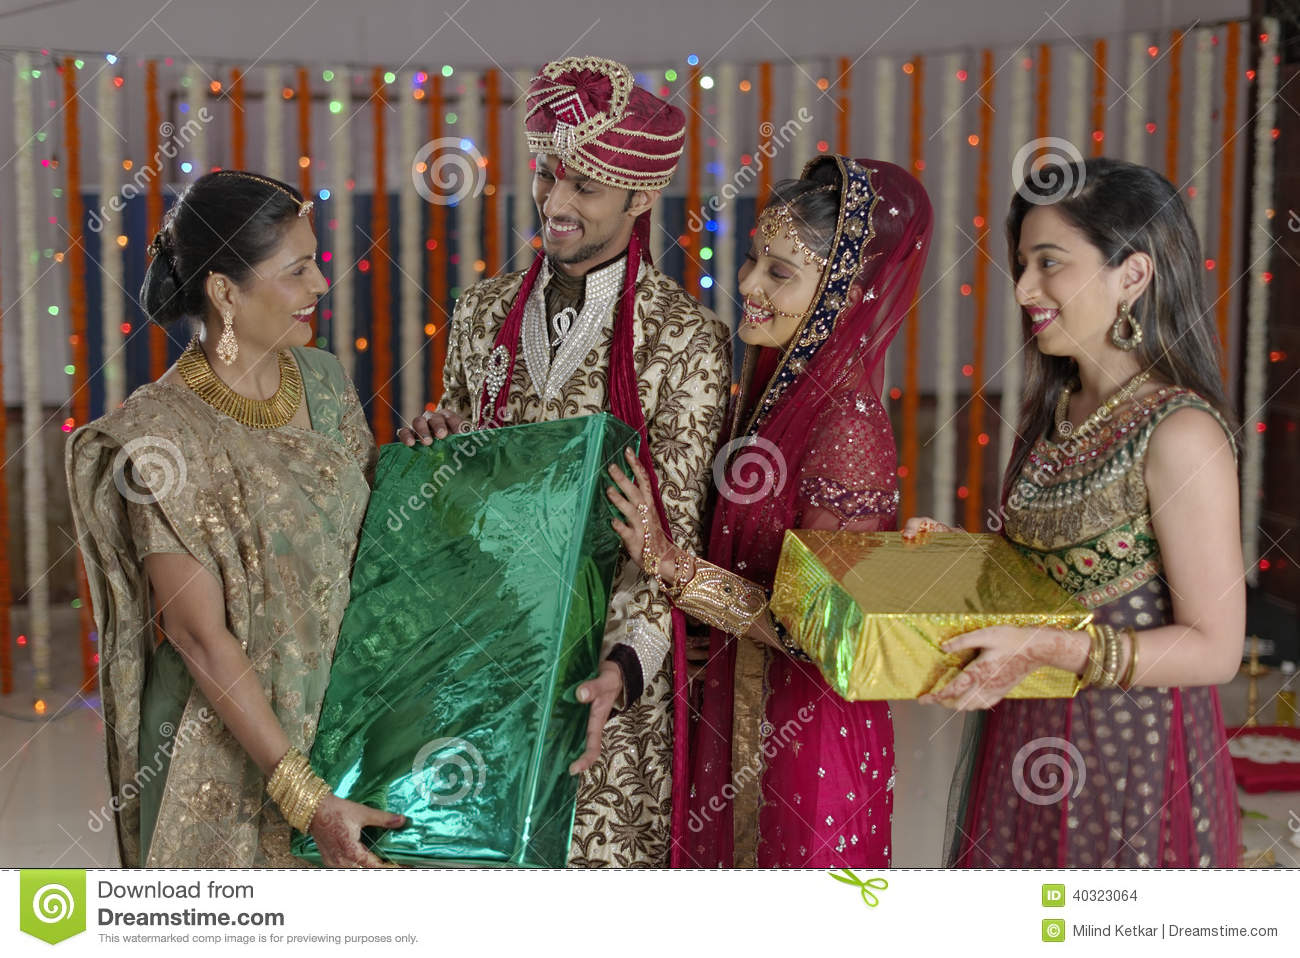 Wedding Gift Ideas For Couple India : Bride And Groom Receiving Gifts From Relatives. Stock Photo - Image ...